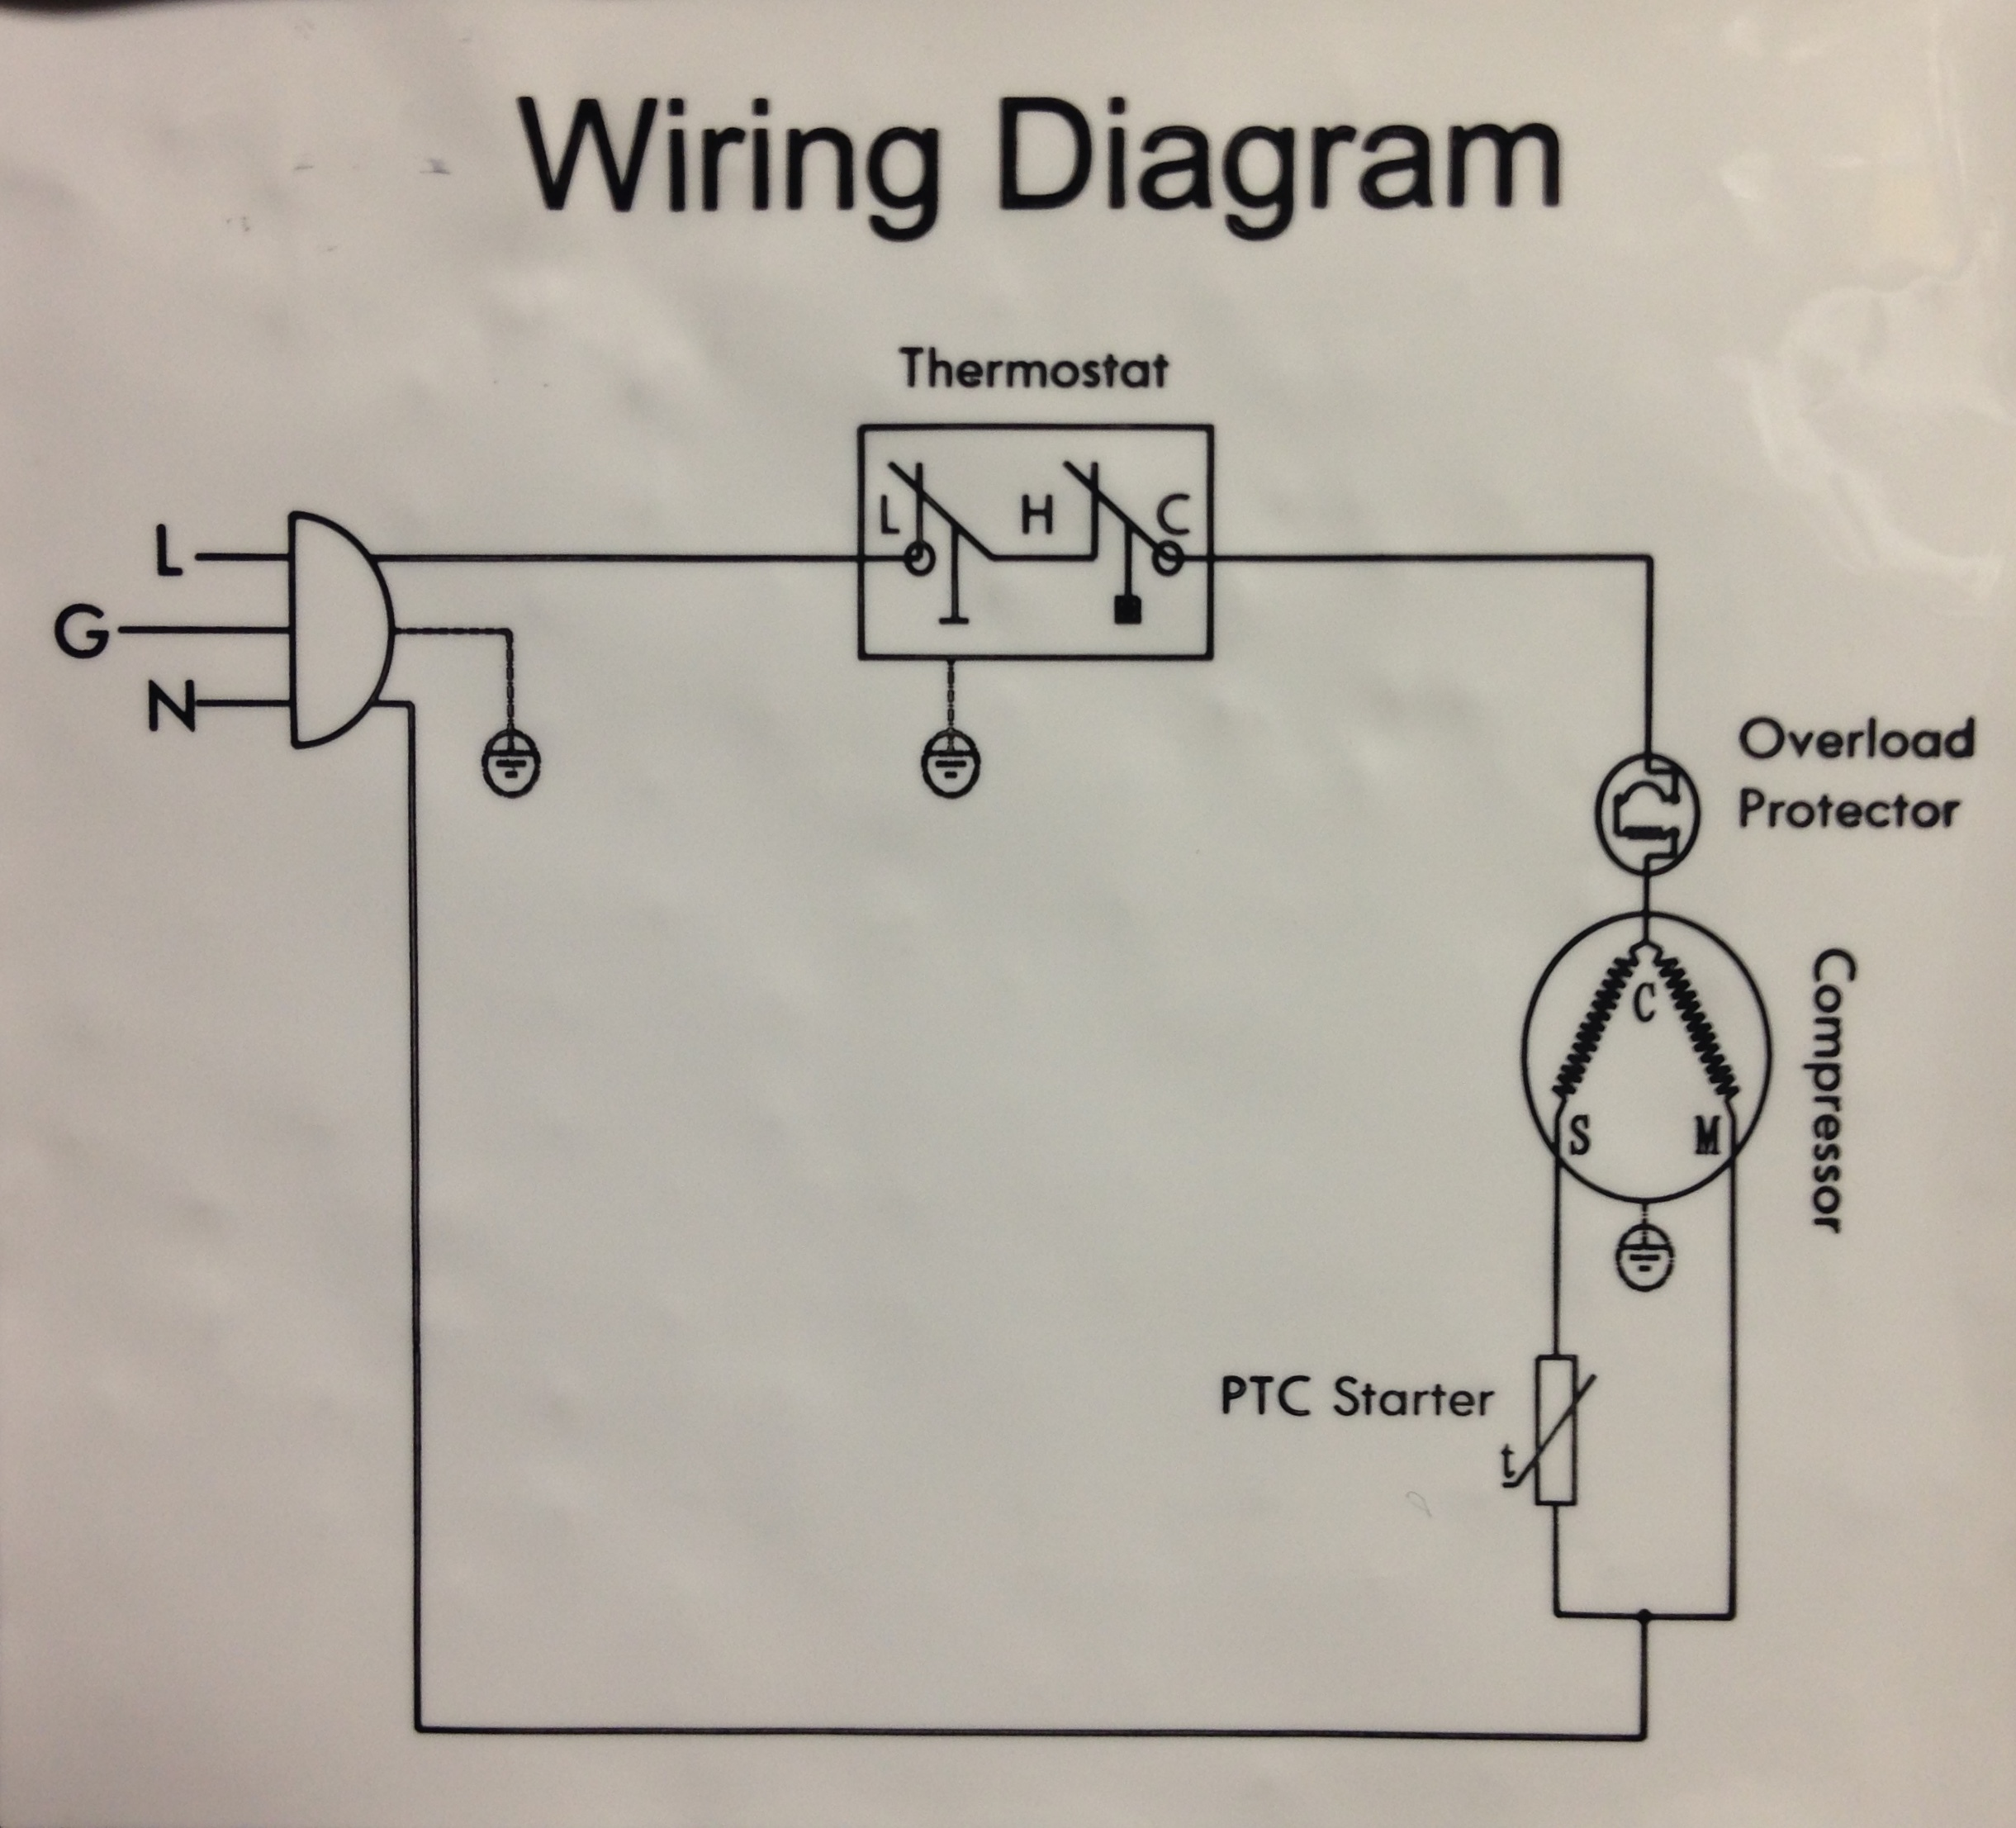 New Build Electronics Newb Diagram Help - fridge-build - BrewPi ...